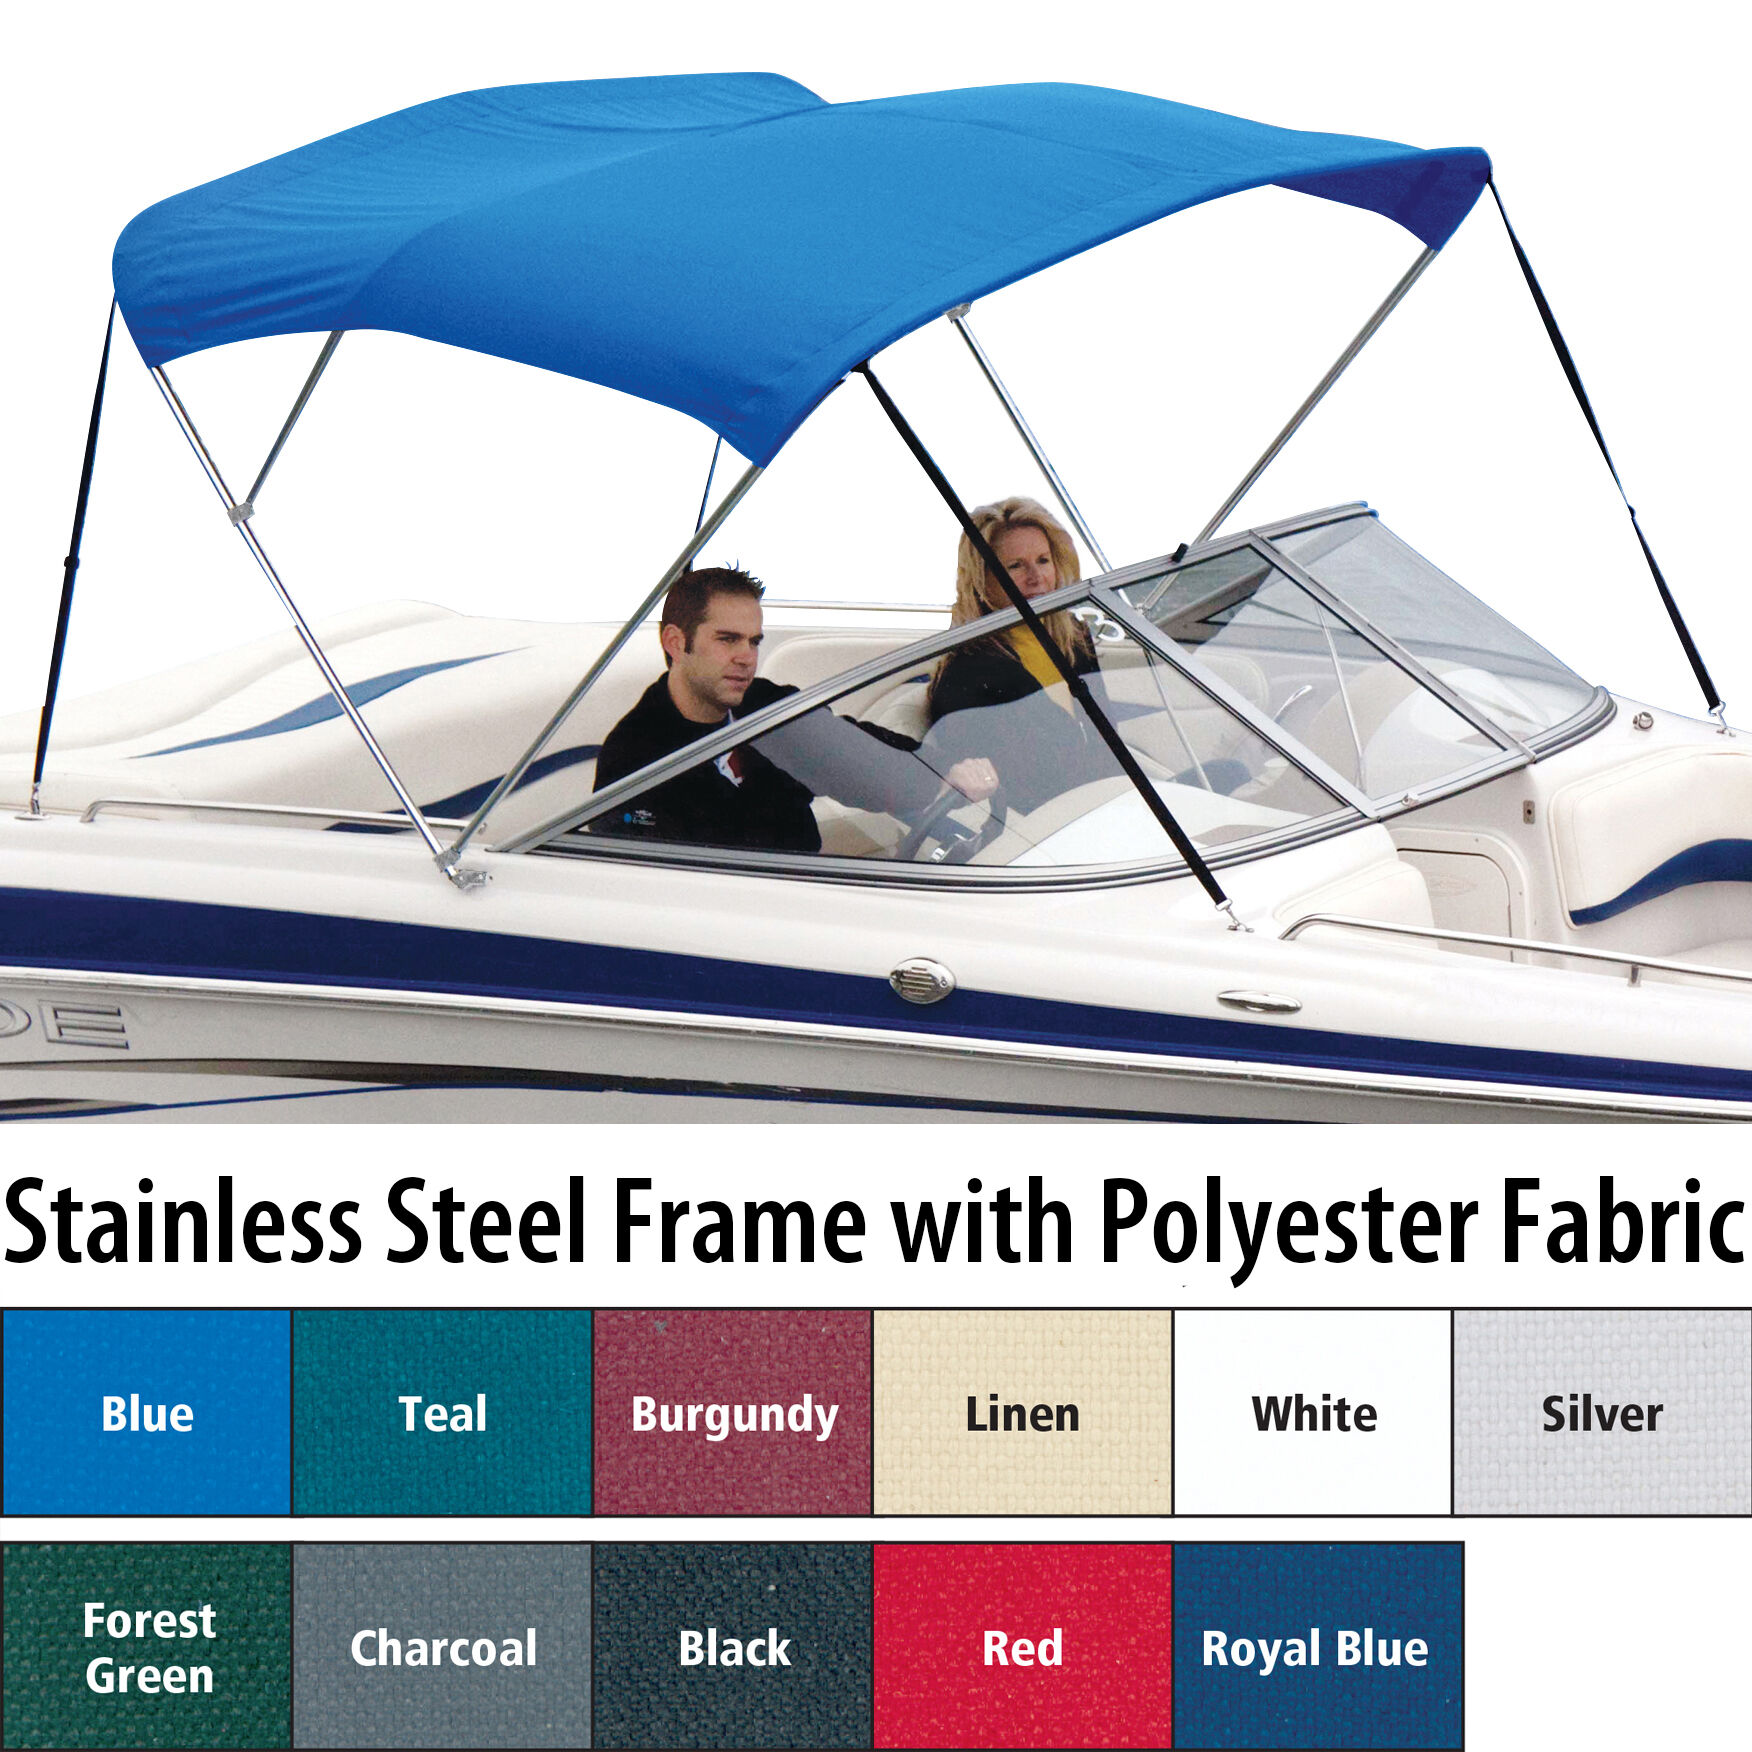 "W// BOOT /& REAR POLES BIMINI TOP BOAT COVER TEAL 3 BOW 72/""L 36/""H 67/""-72/""W"